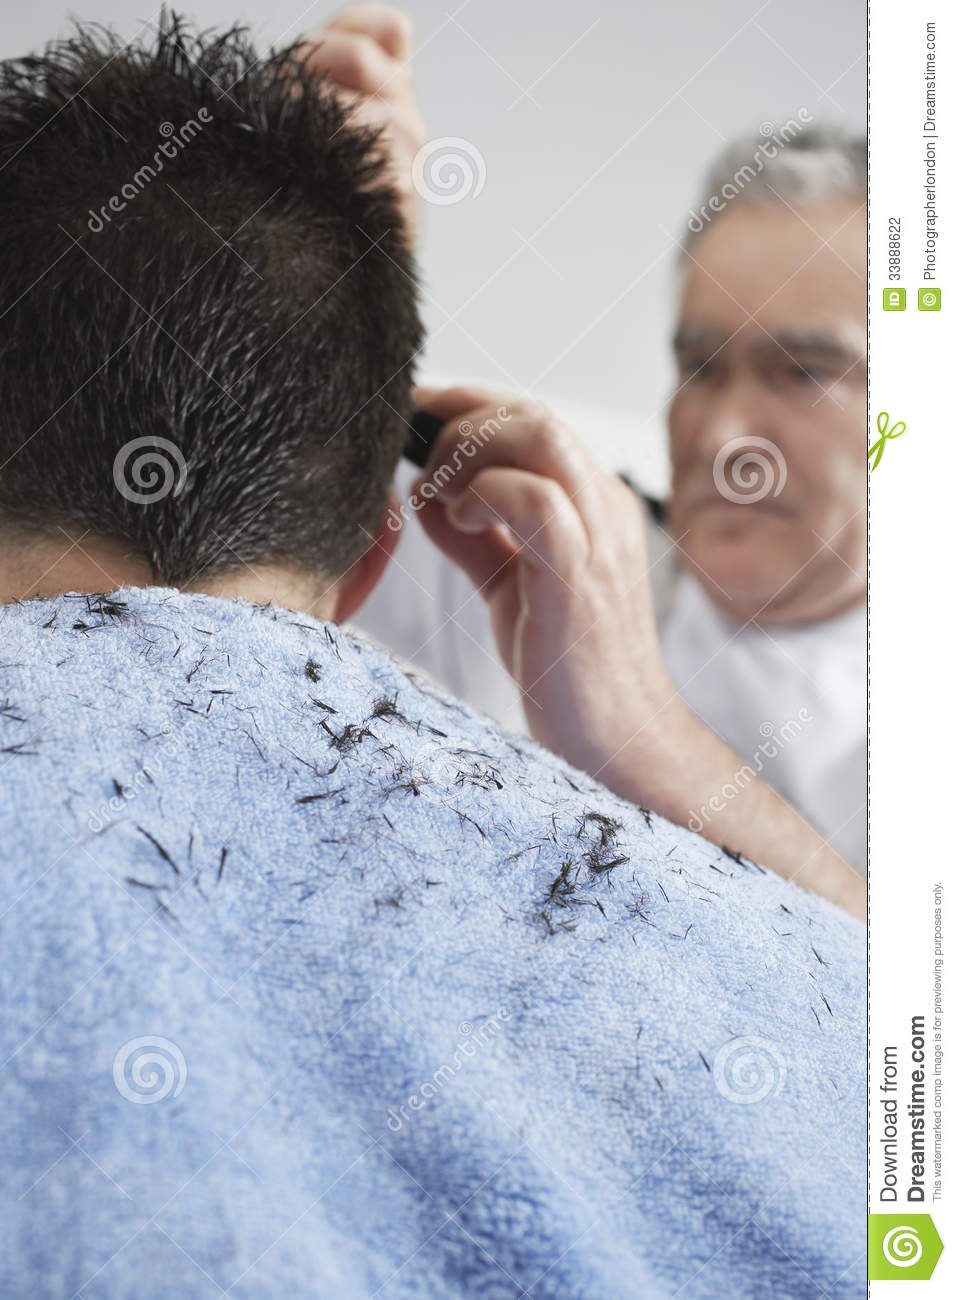 Hairdresser Cutting Man S Hair Stock Photo Image Of